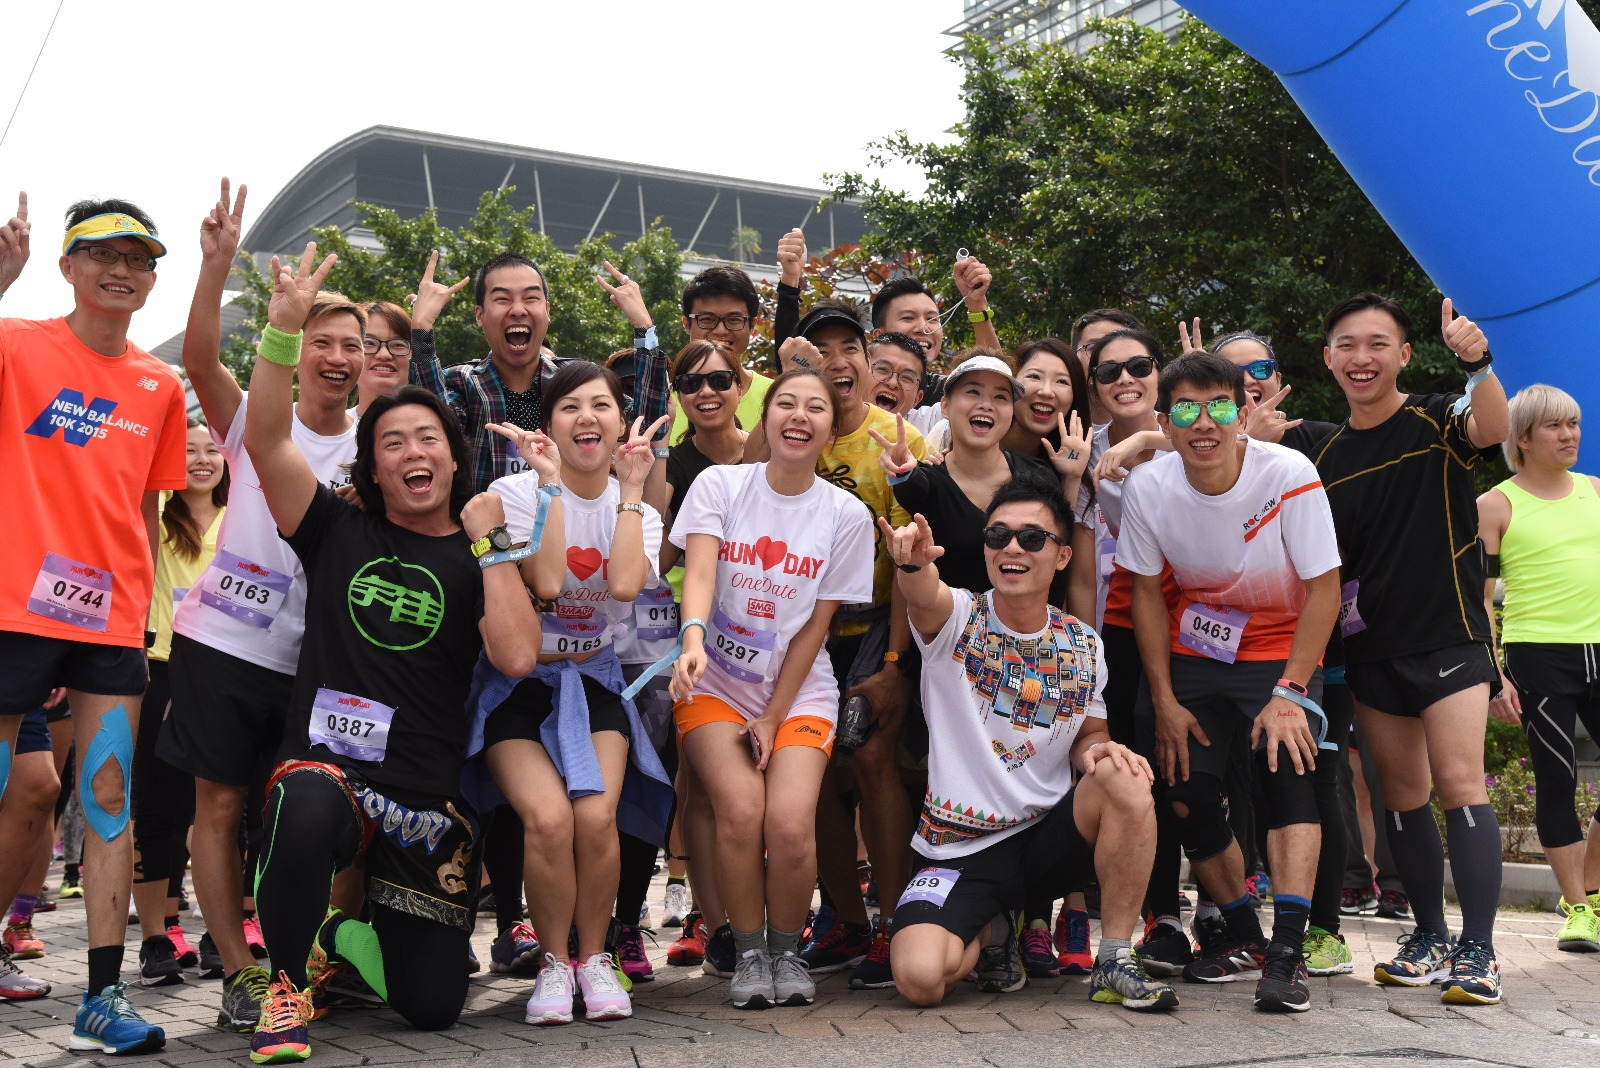 Run Date 2018 相約起跑線全港首創約會主題跑步 - HK Romance Dating HKRD - One Stop Speed Dating & Matching Service